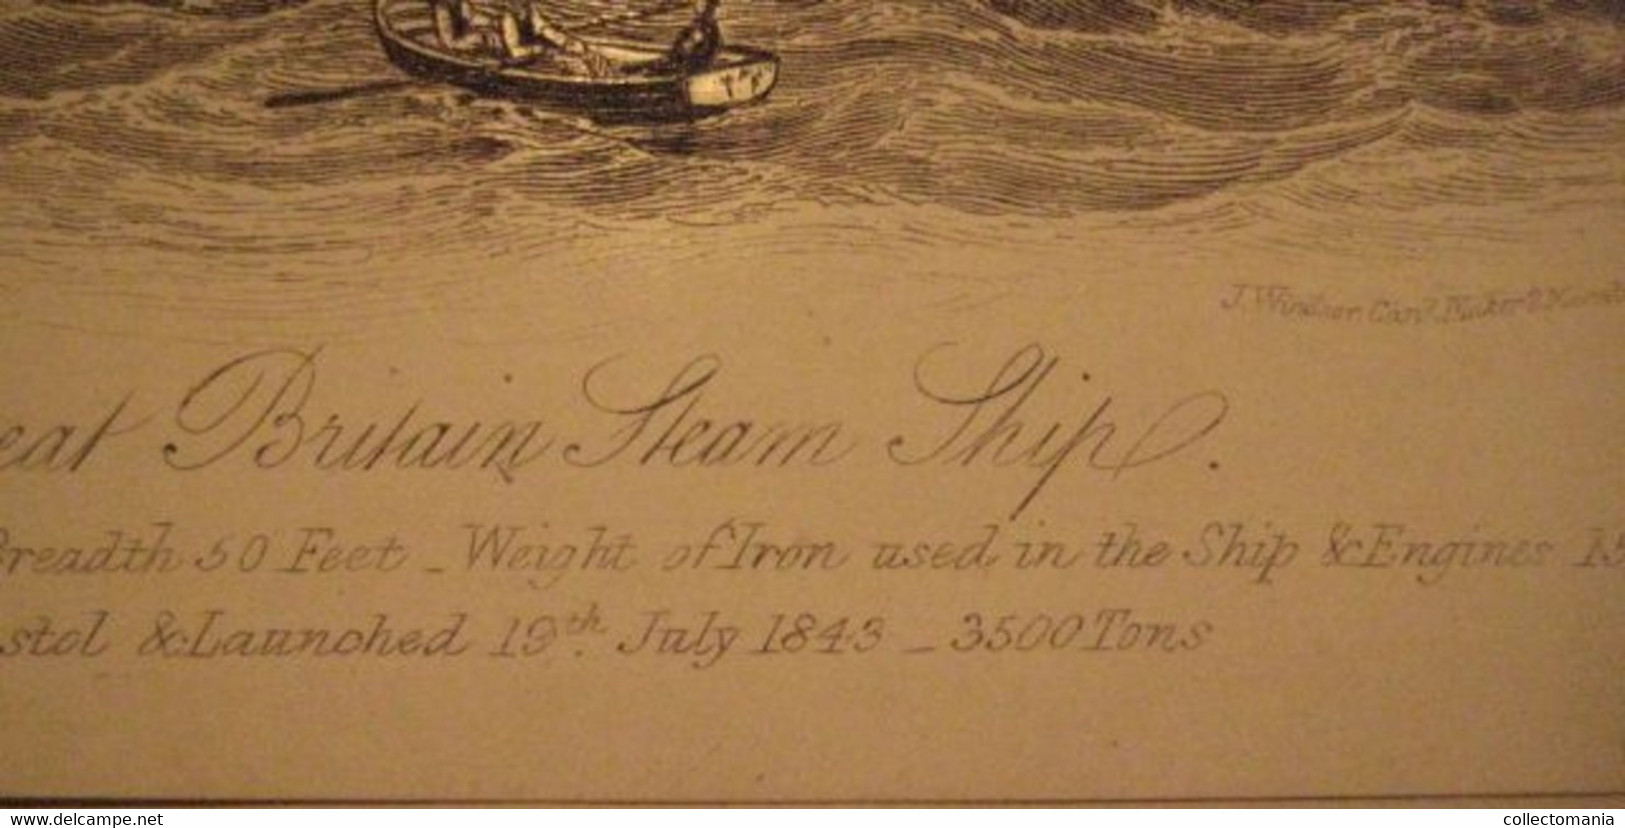 1 Card 1843 First Big CLIPPER SHIP,  The Great Britain Steam Ship - Lith. Wood London, Windsor Card Maker 15x 11,5cm - Sailing Vessels